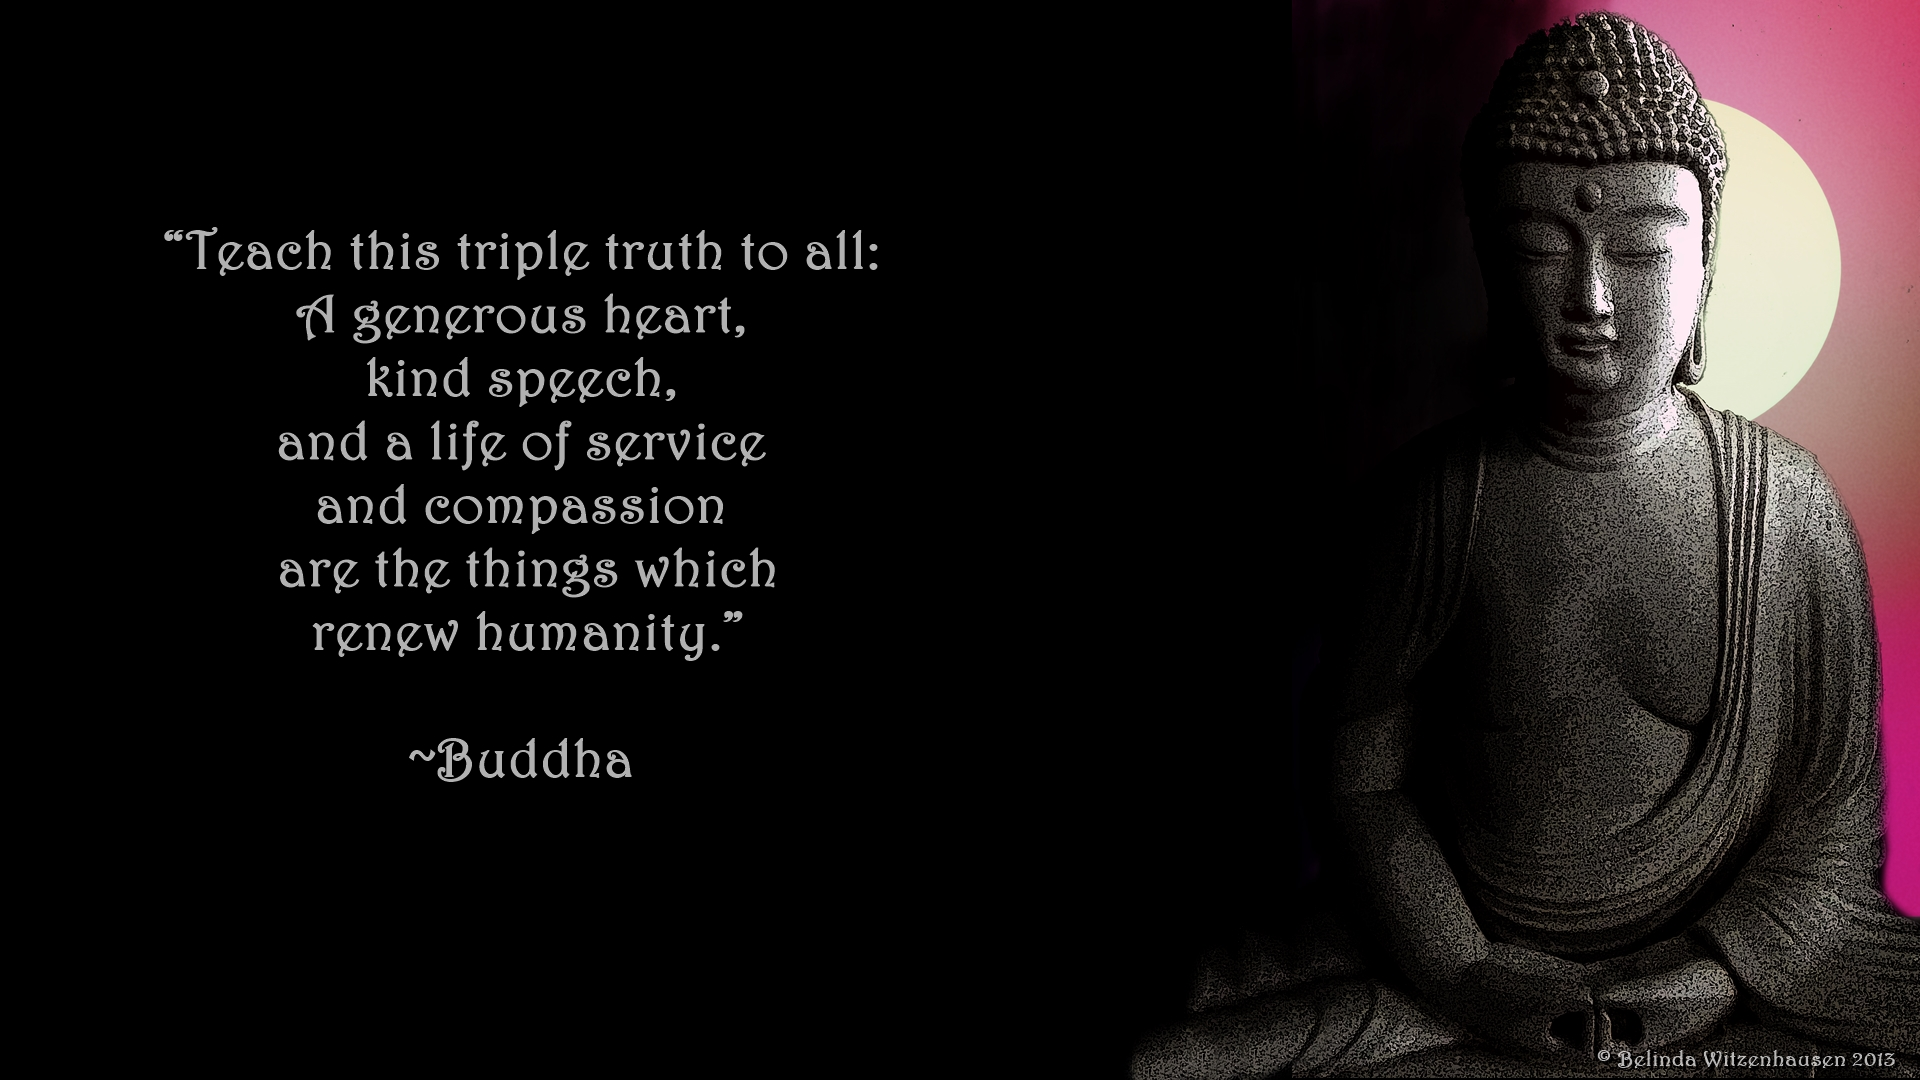 Buddha Quotes Wallpapers QuotesGram 1920x1080